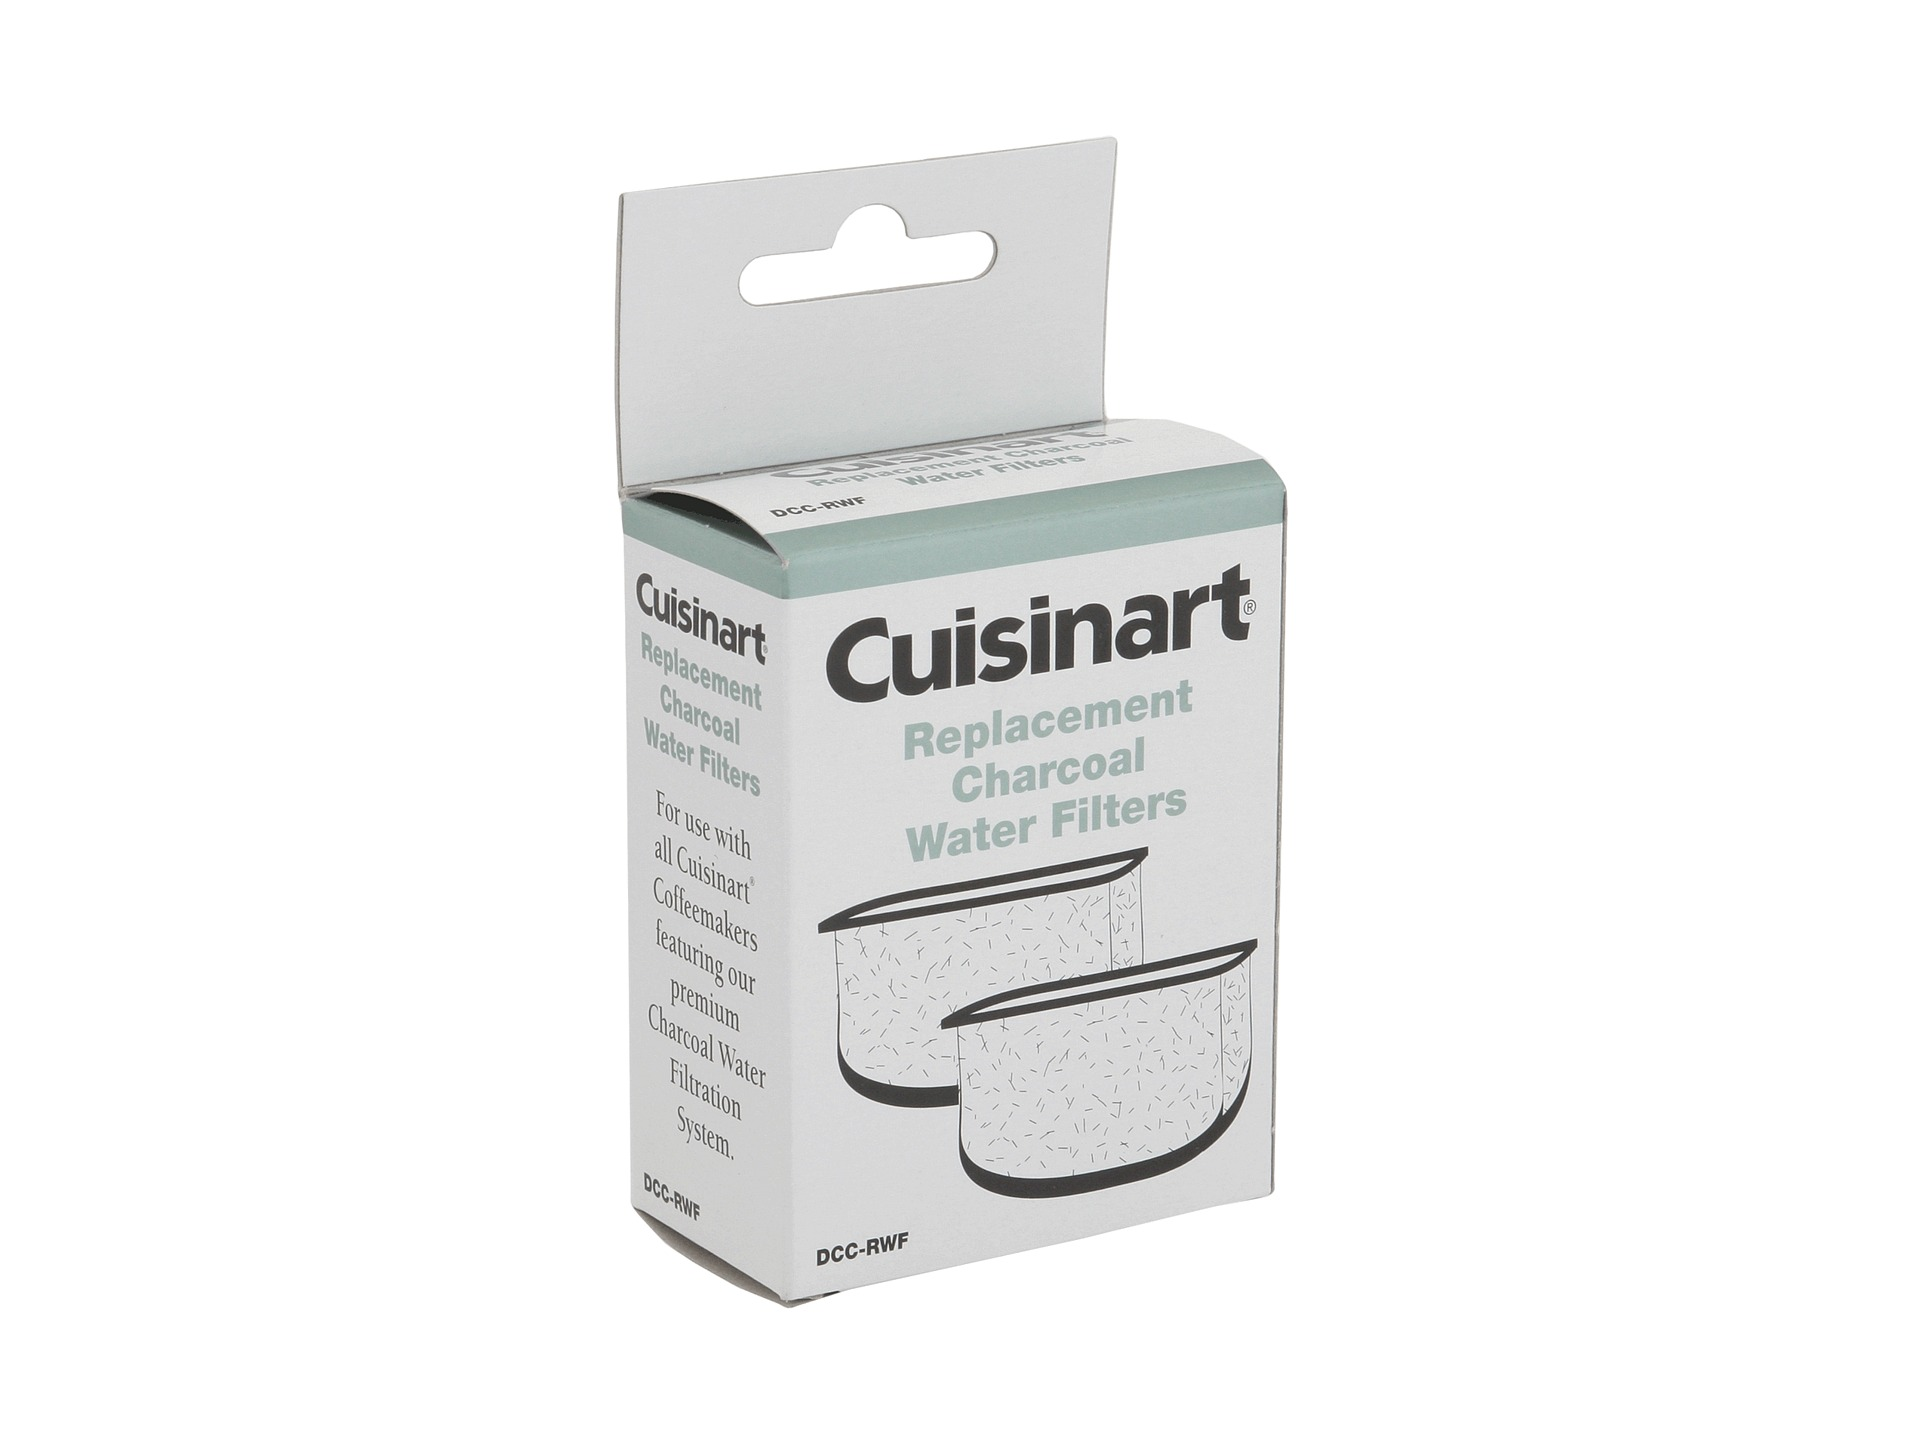 cuisinart dcc 1200 parts diagram different of plant coffee maker rwf 1 bimmerz for